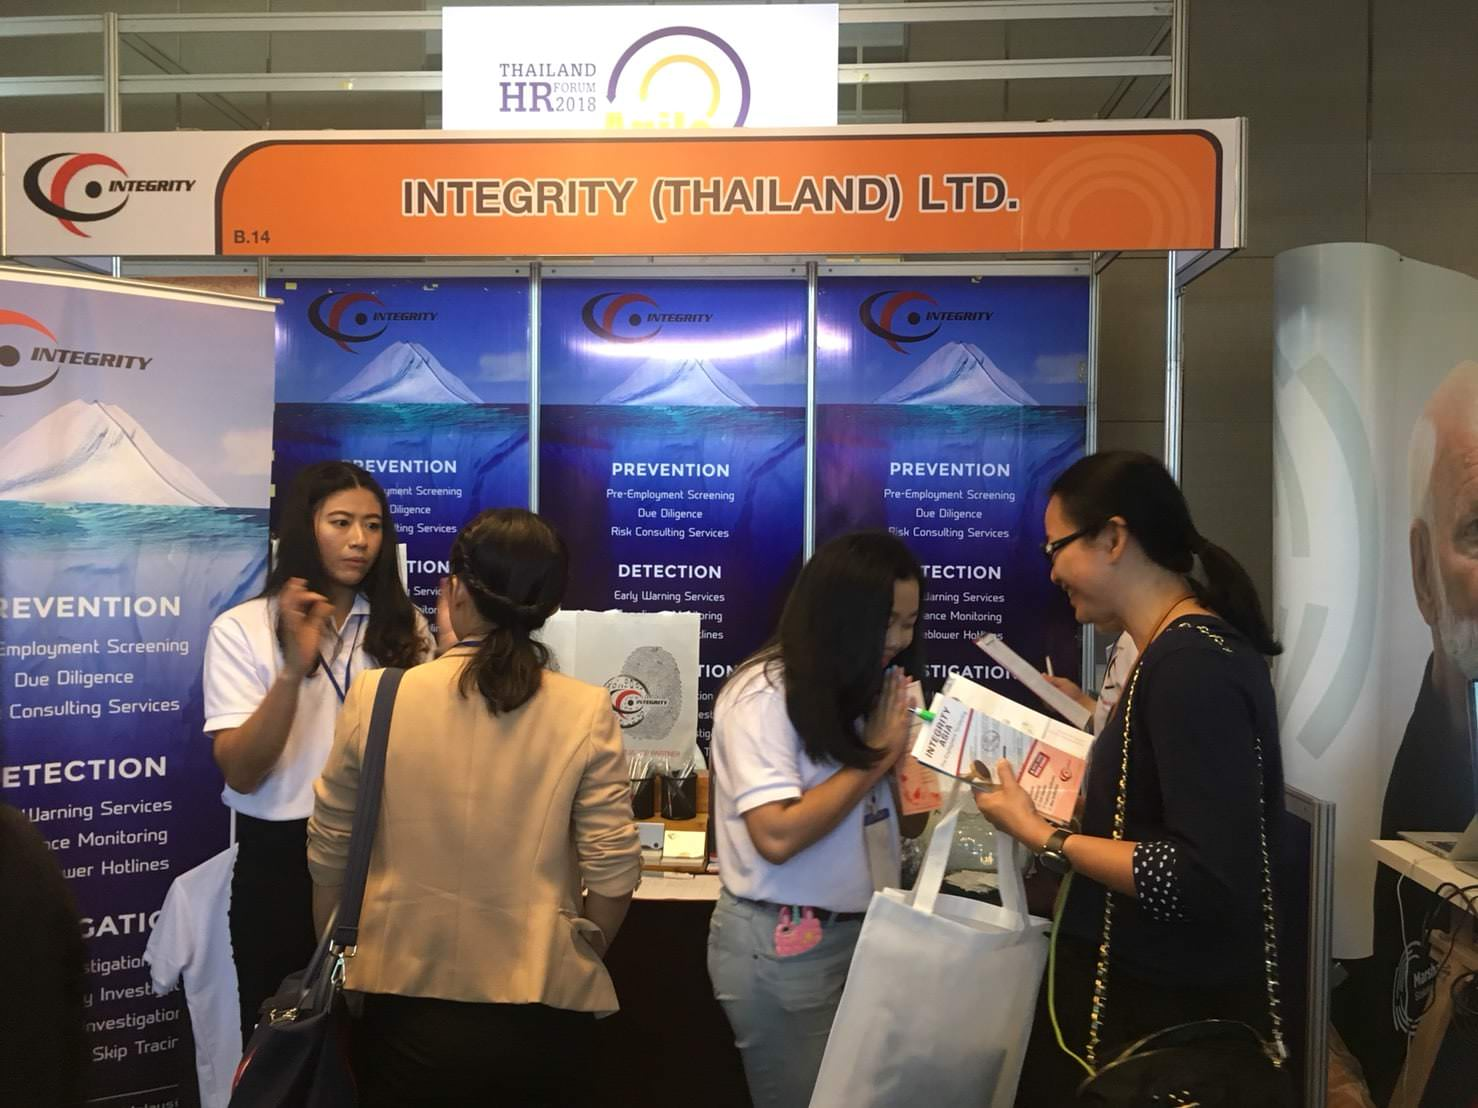 Thailand HR Forum 2018